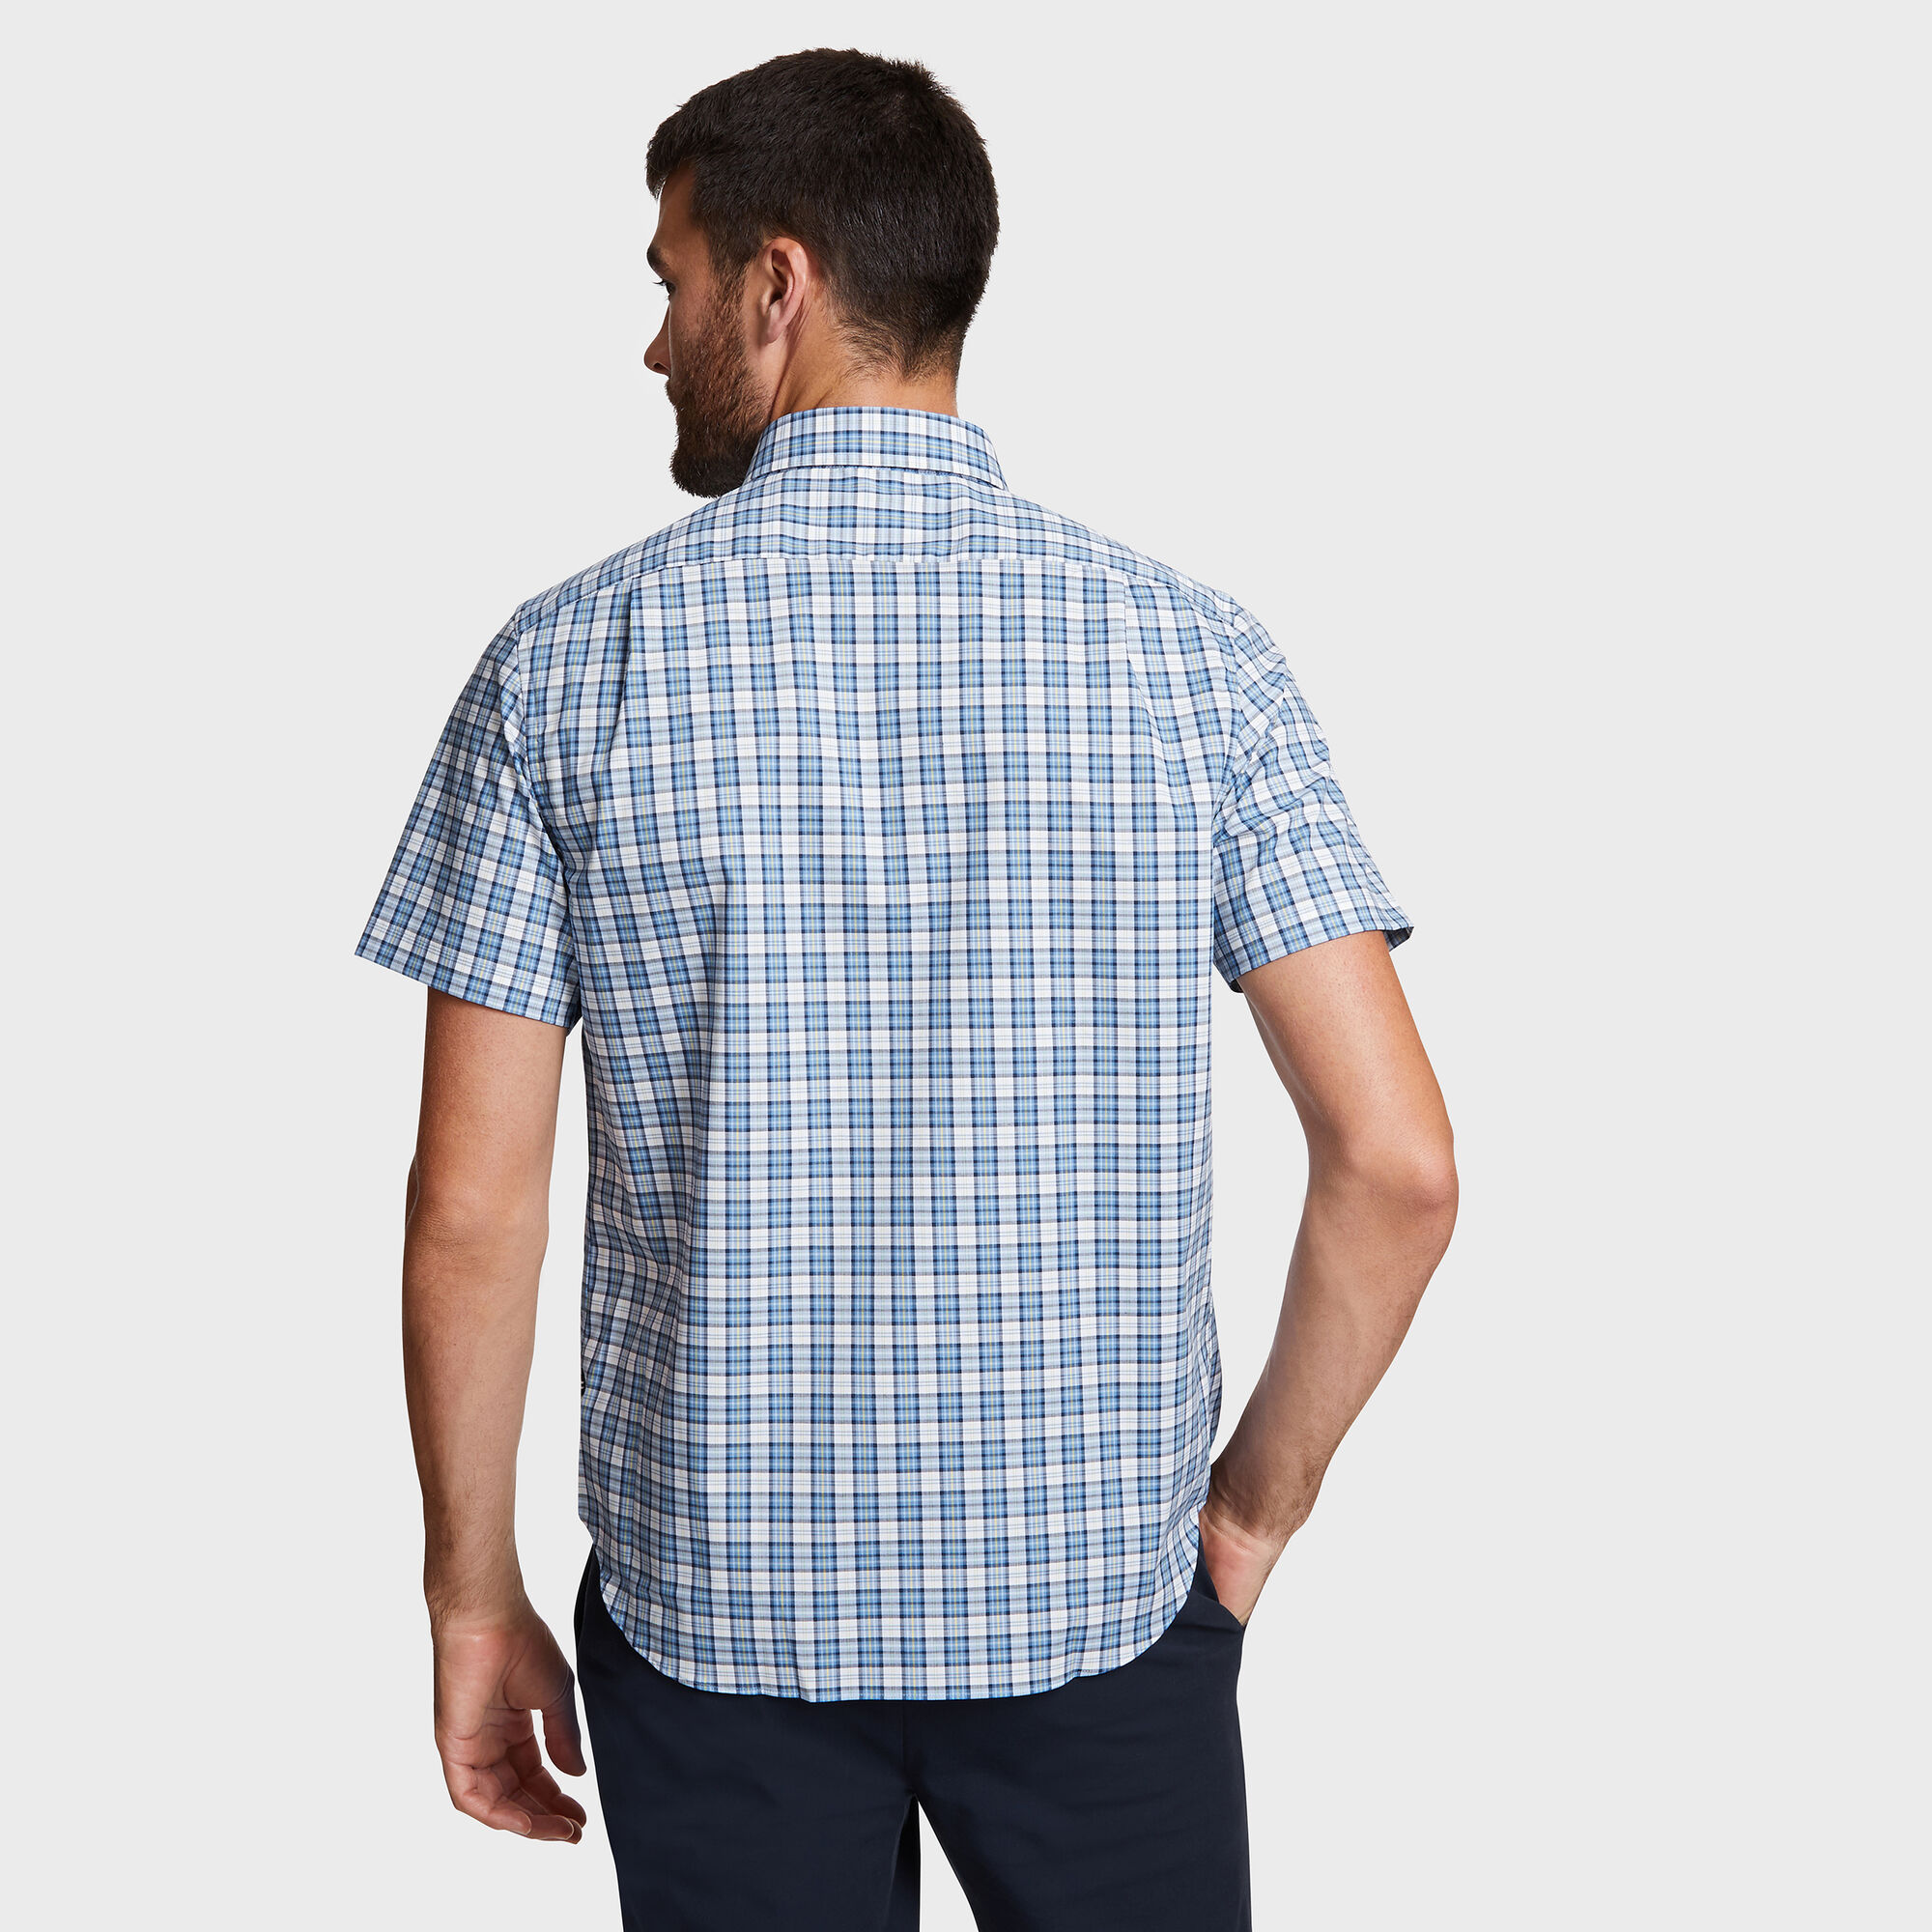 63fbcb9d How To Wear Short Sleeve Plaid Shirts - DREAMWORKS